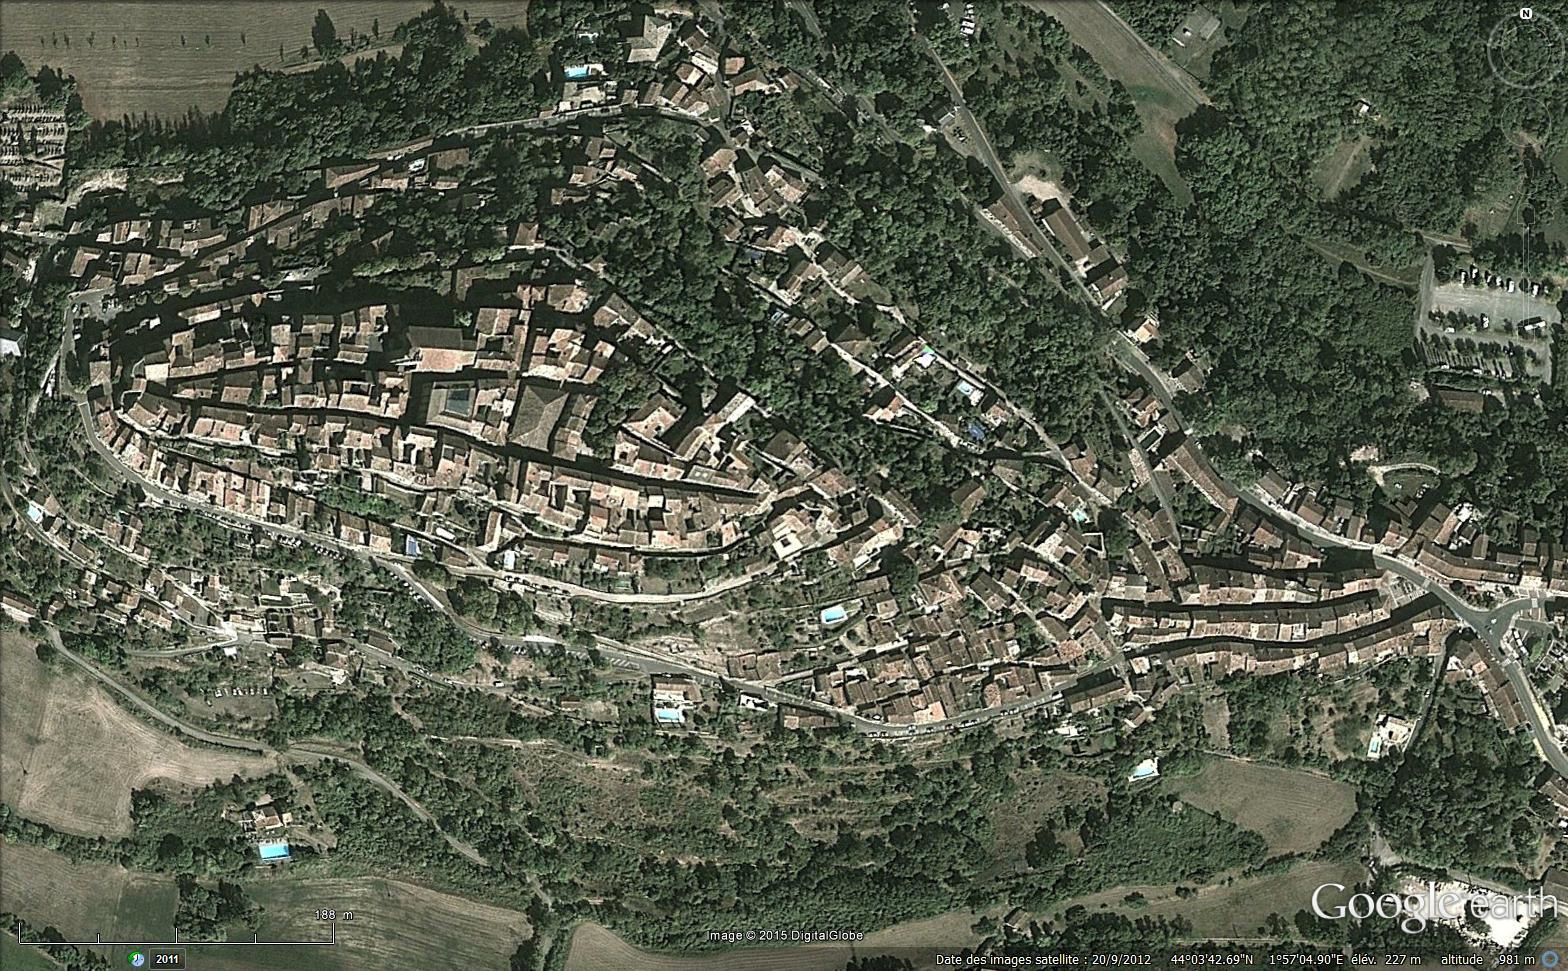 Images satellitaires via Google earth